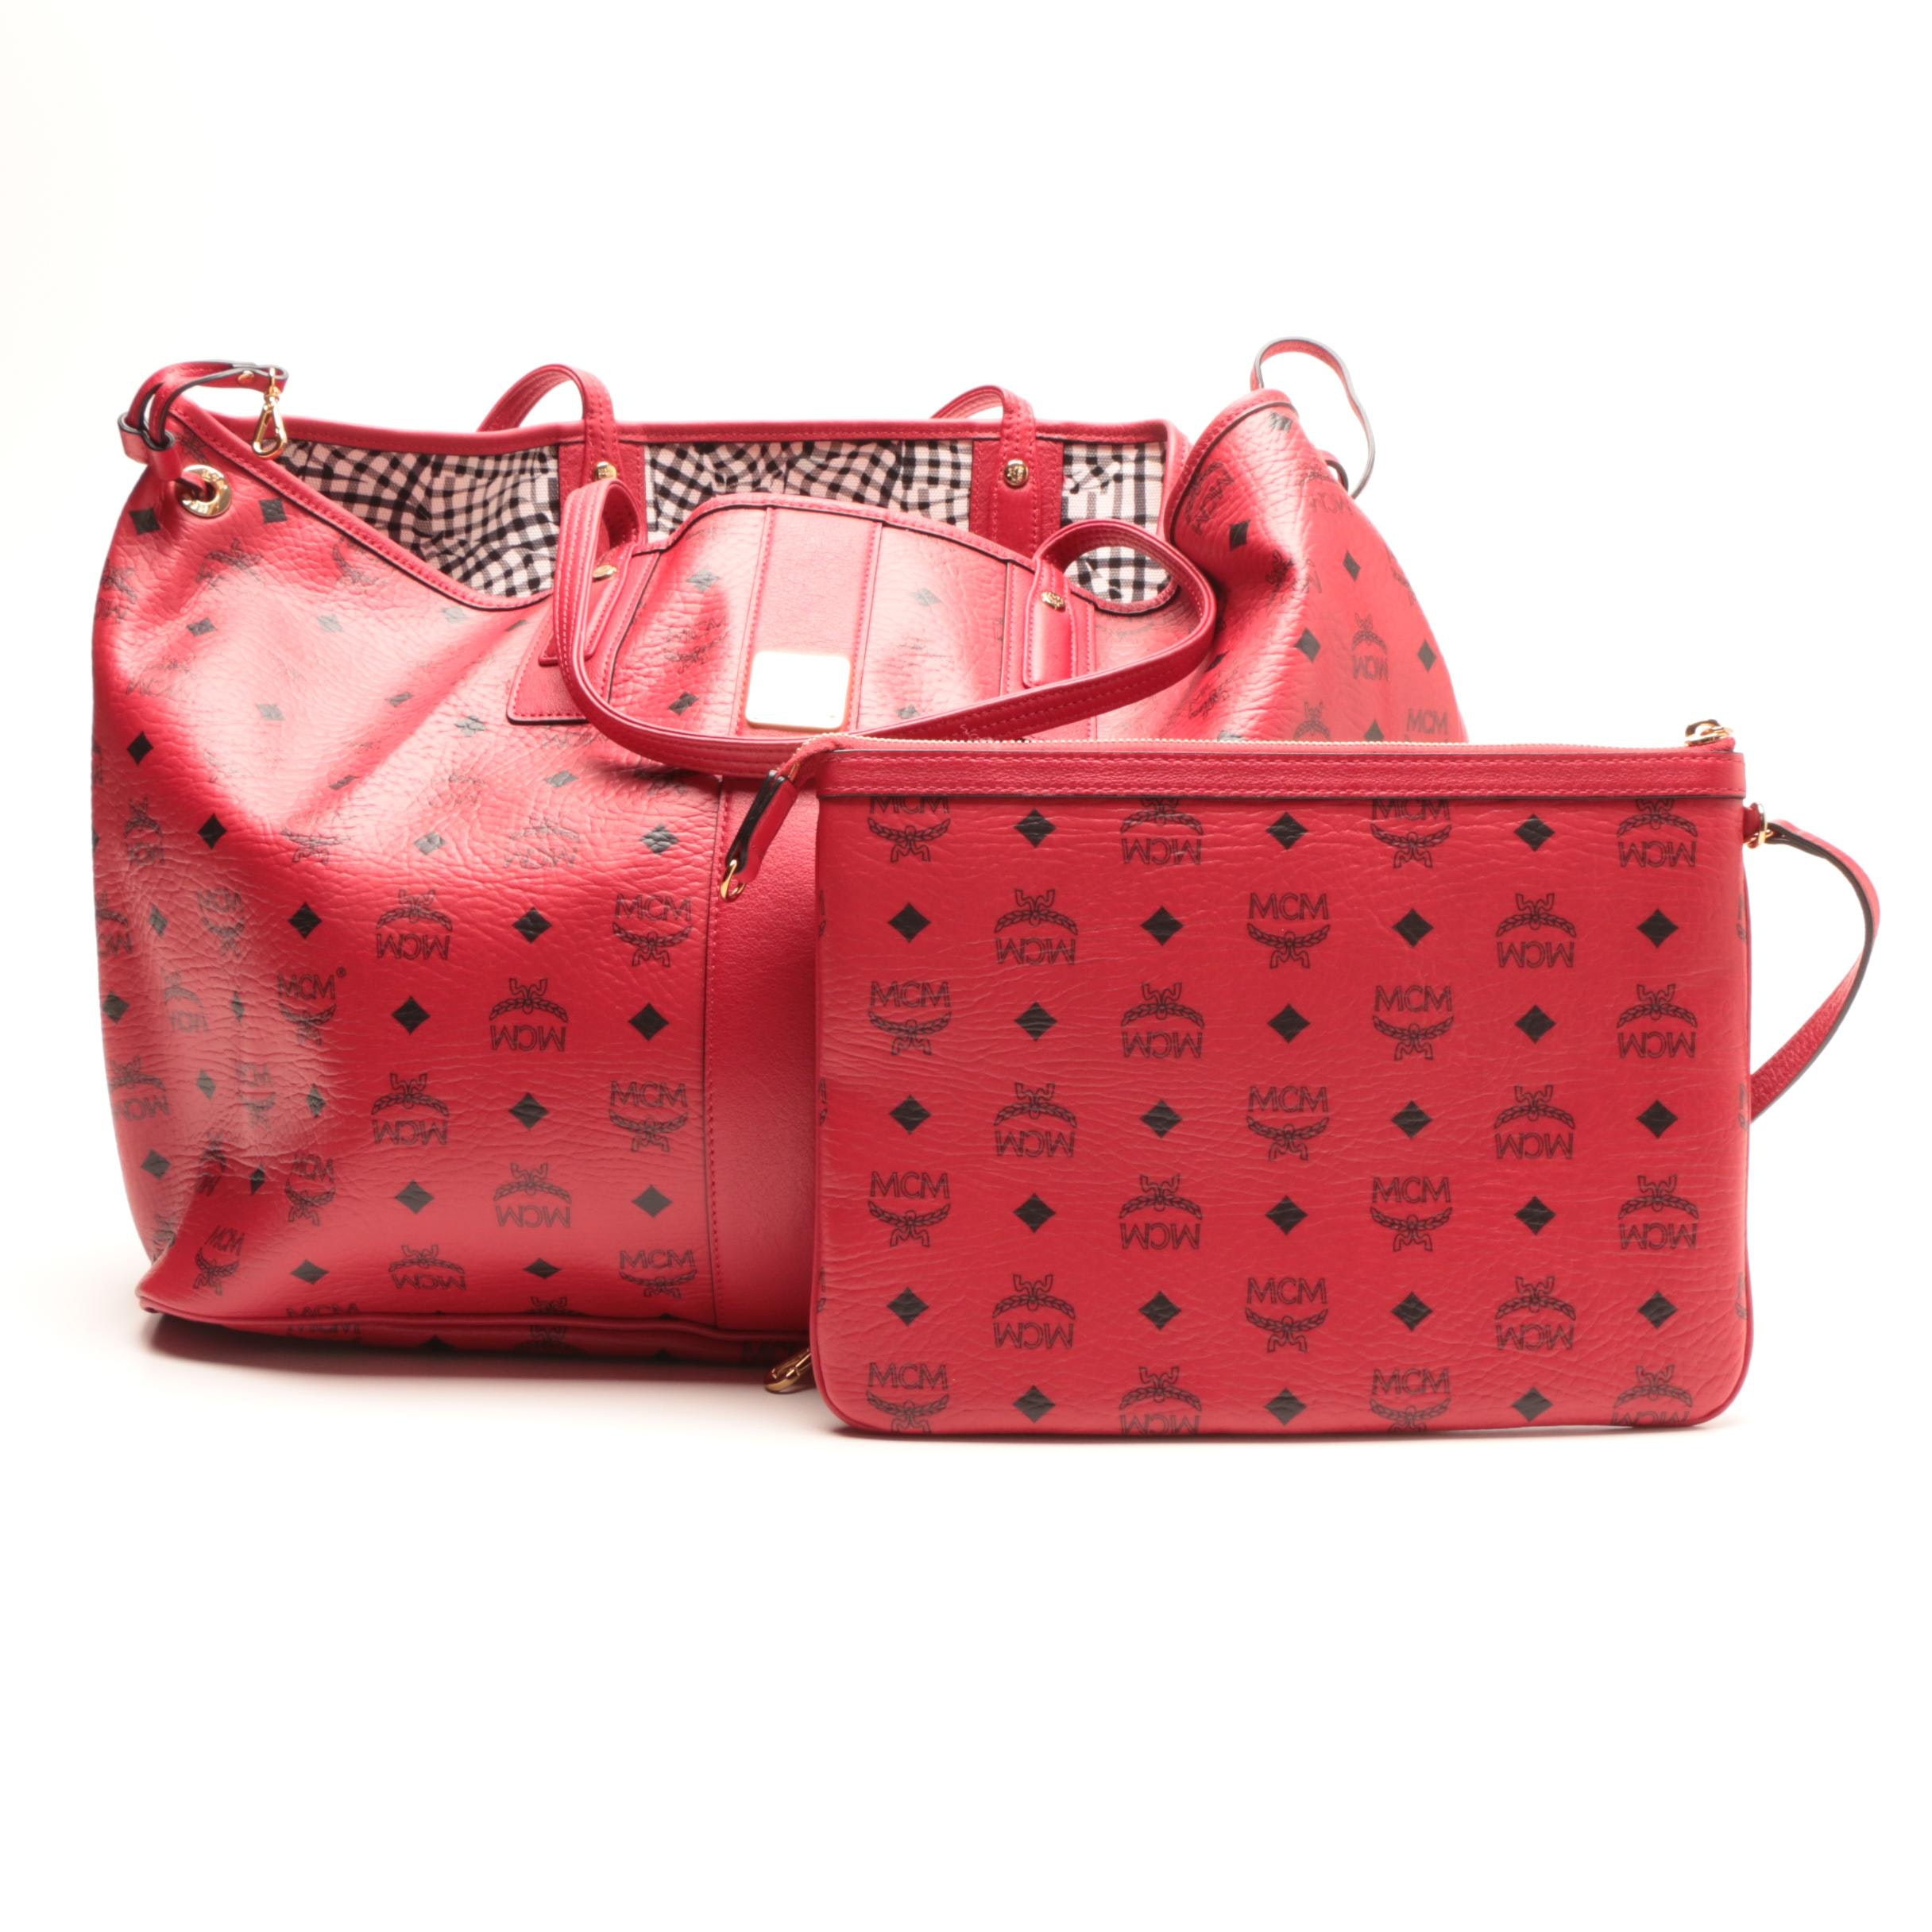 MCM Liz Red Leather and Gingham Reversible Shopper Tote Bag